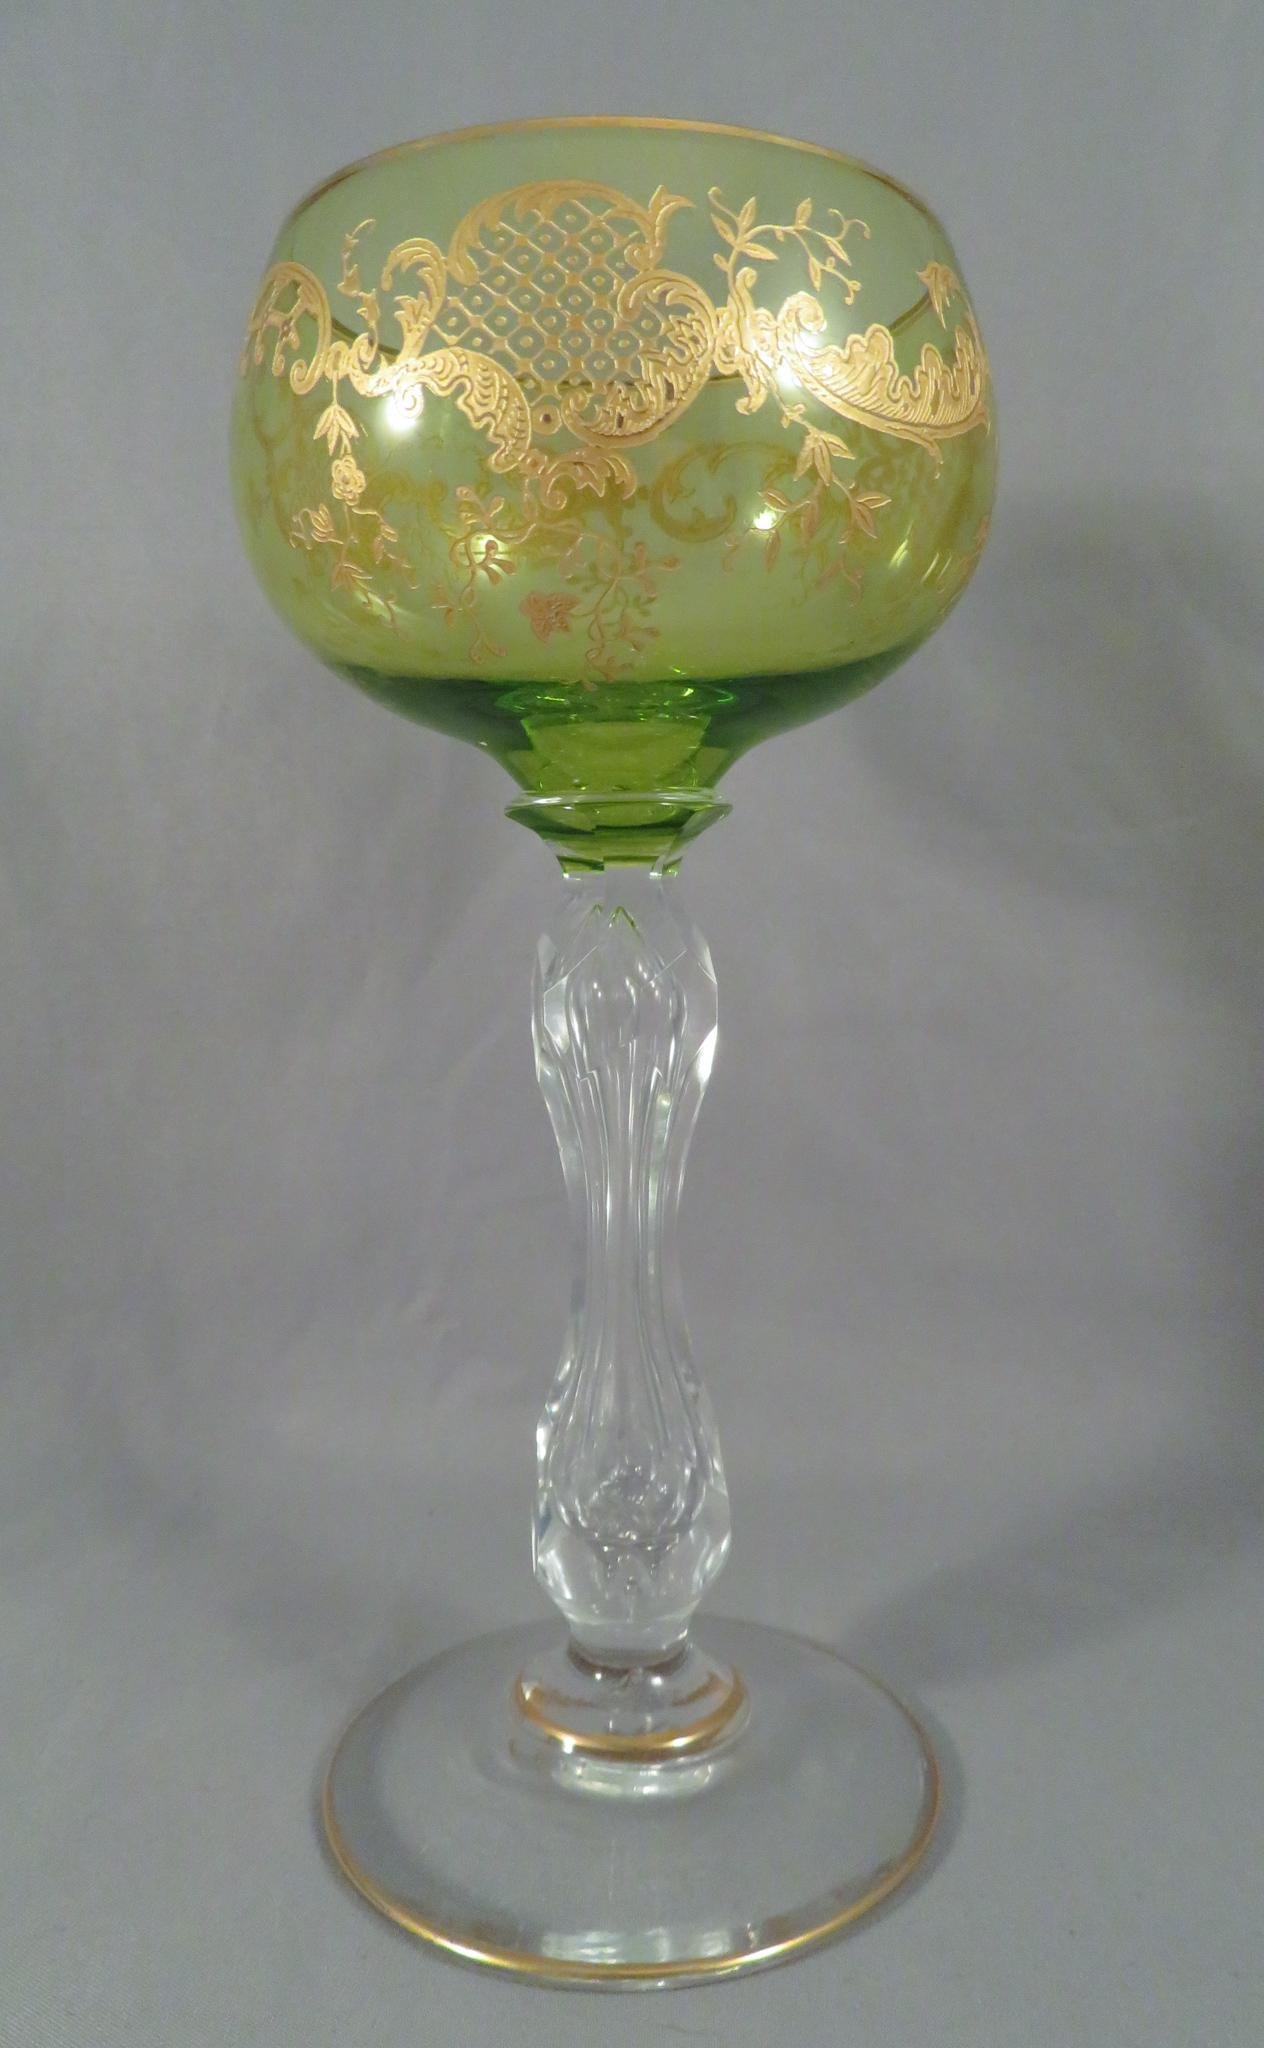 c.1910 French Green Gold Encrusted Wine Hock Glass